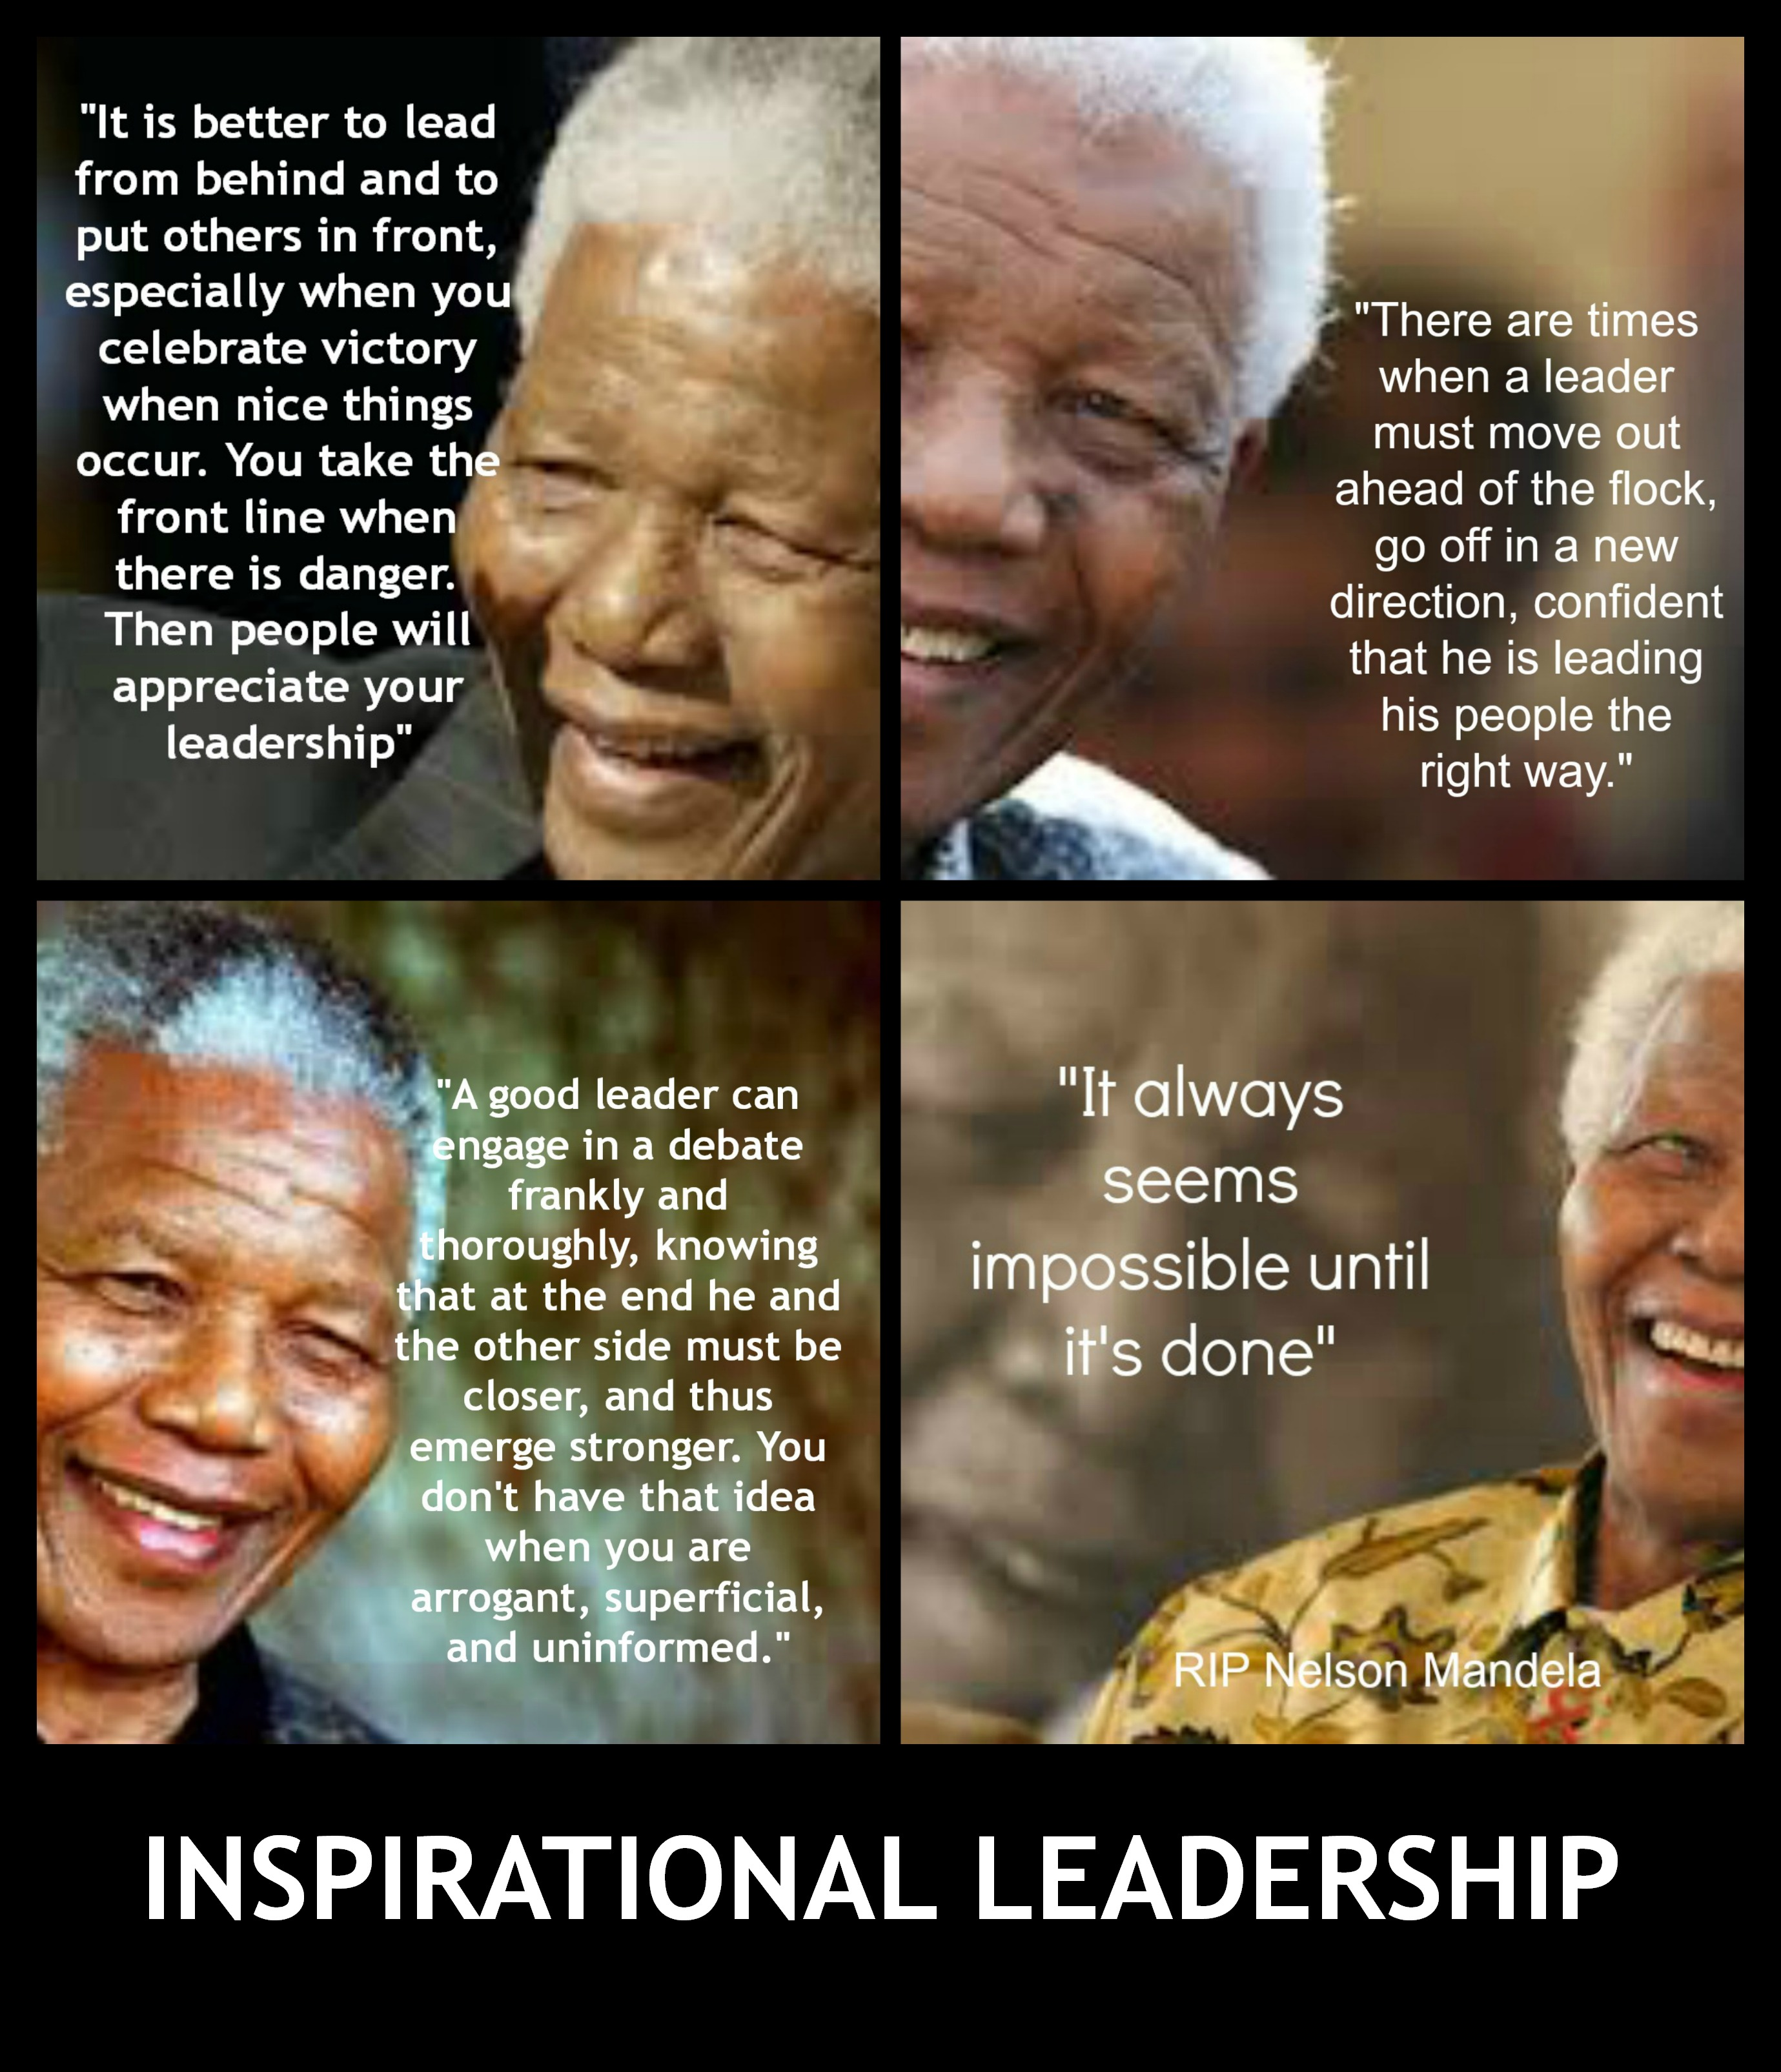 Motivational Quotes About Leadership: 4 Inspirational Leadership Quotes From A Legendary Leader